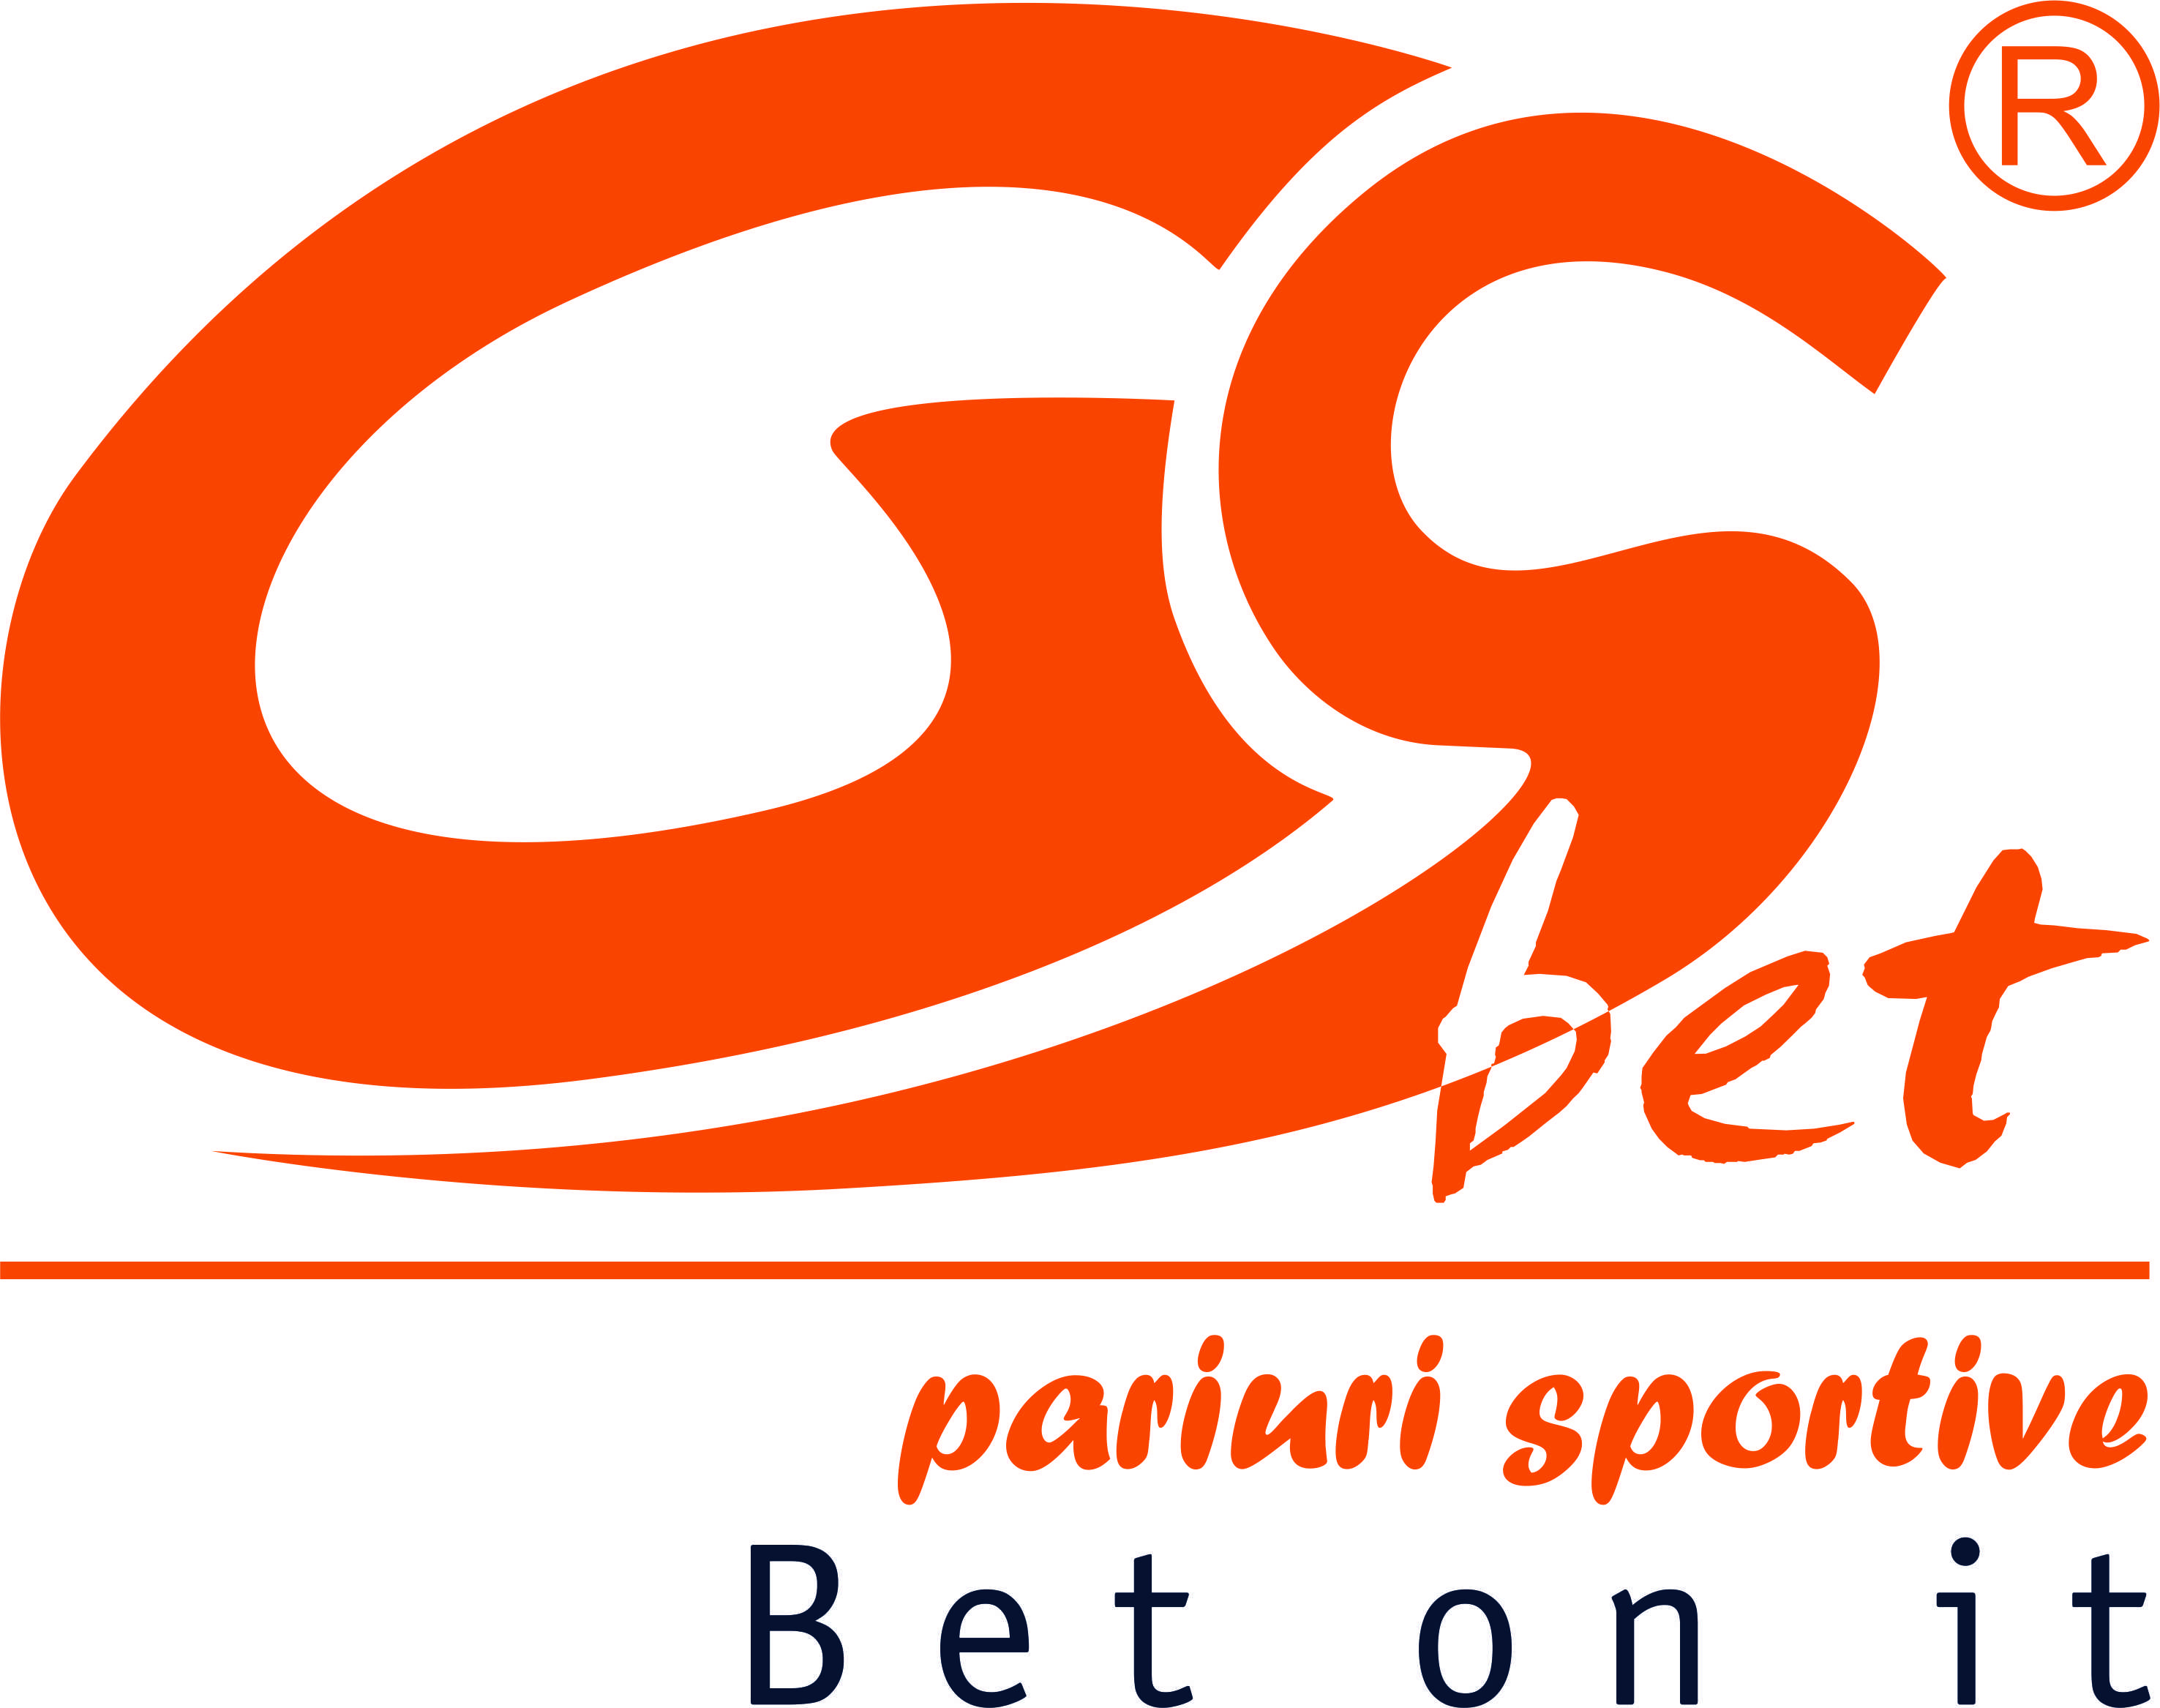 Casa de pariuri gs betting sports/betting